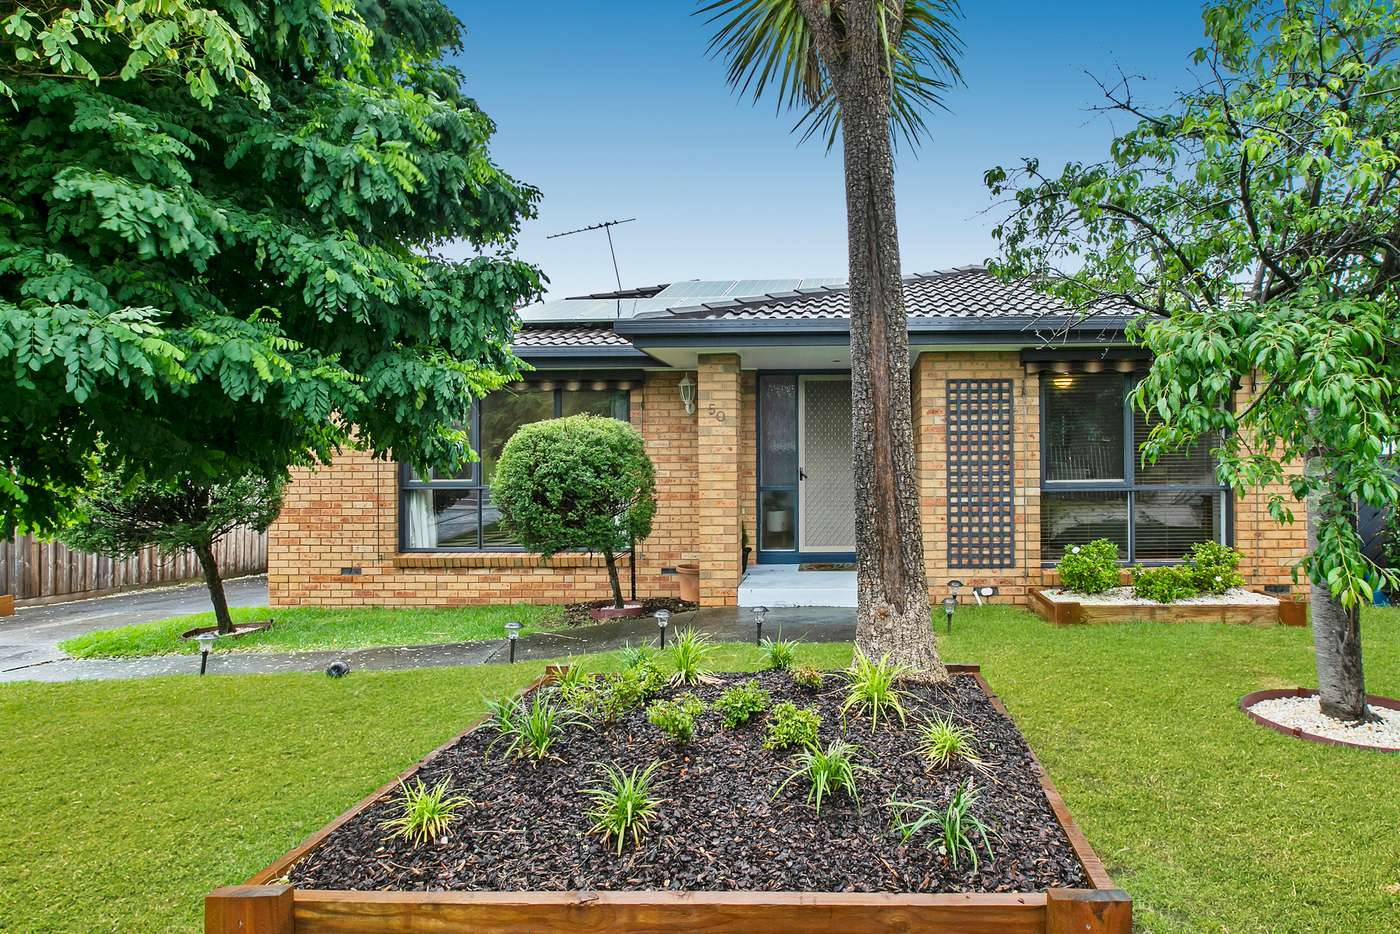 Main view of Homely house listing, 50 Nettle Drive, Hallam VIC 3803